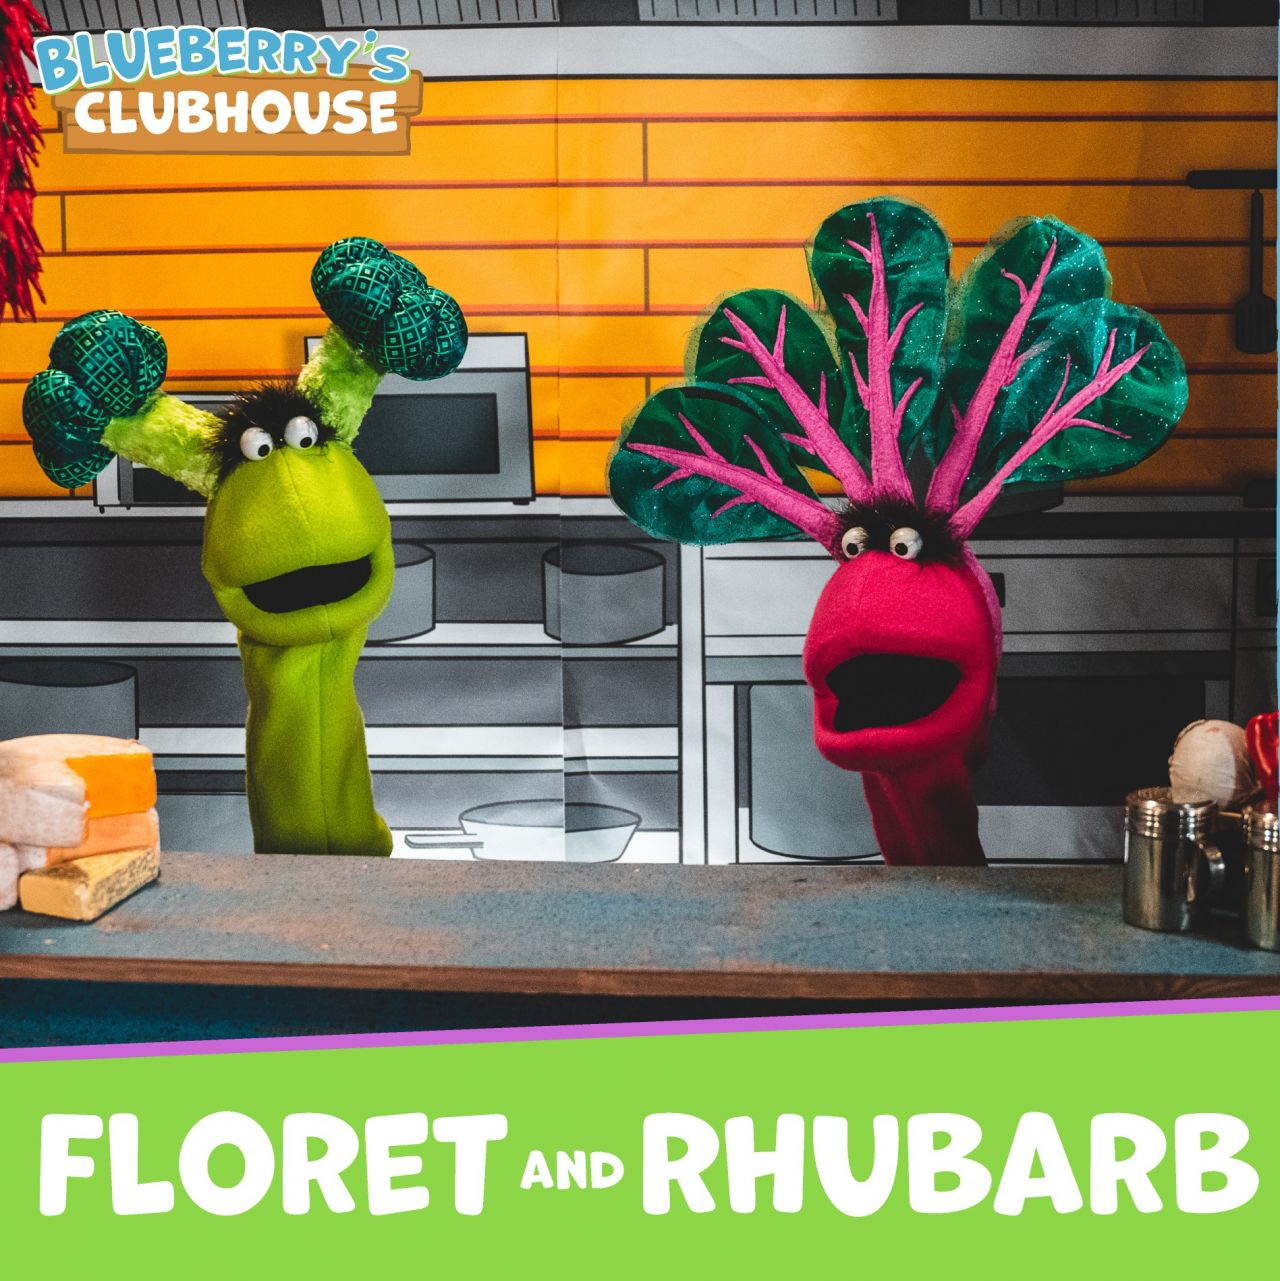 Floret and Rhurbab Puppets stand behind kitchen counter